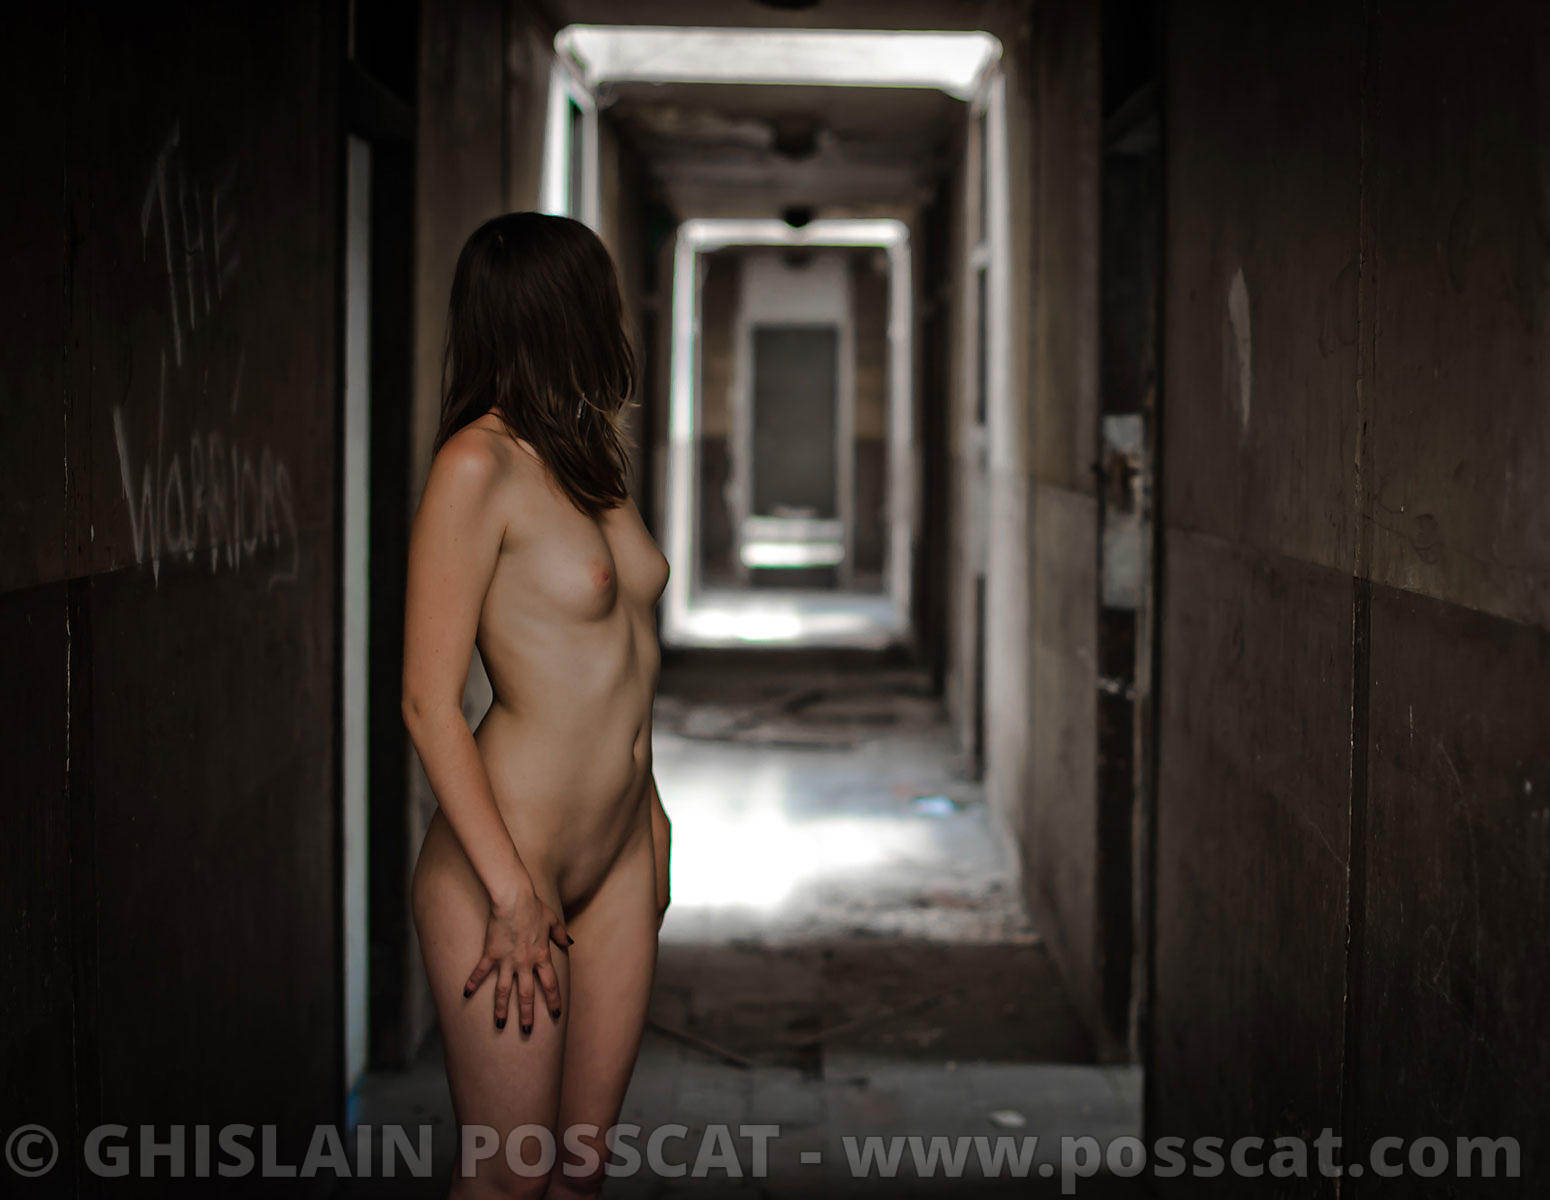 Nu artistique - photo erotique - photos erotiques - photo nu - photos erotique - femme nue – nu - photographe erotique –nu - ...